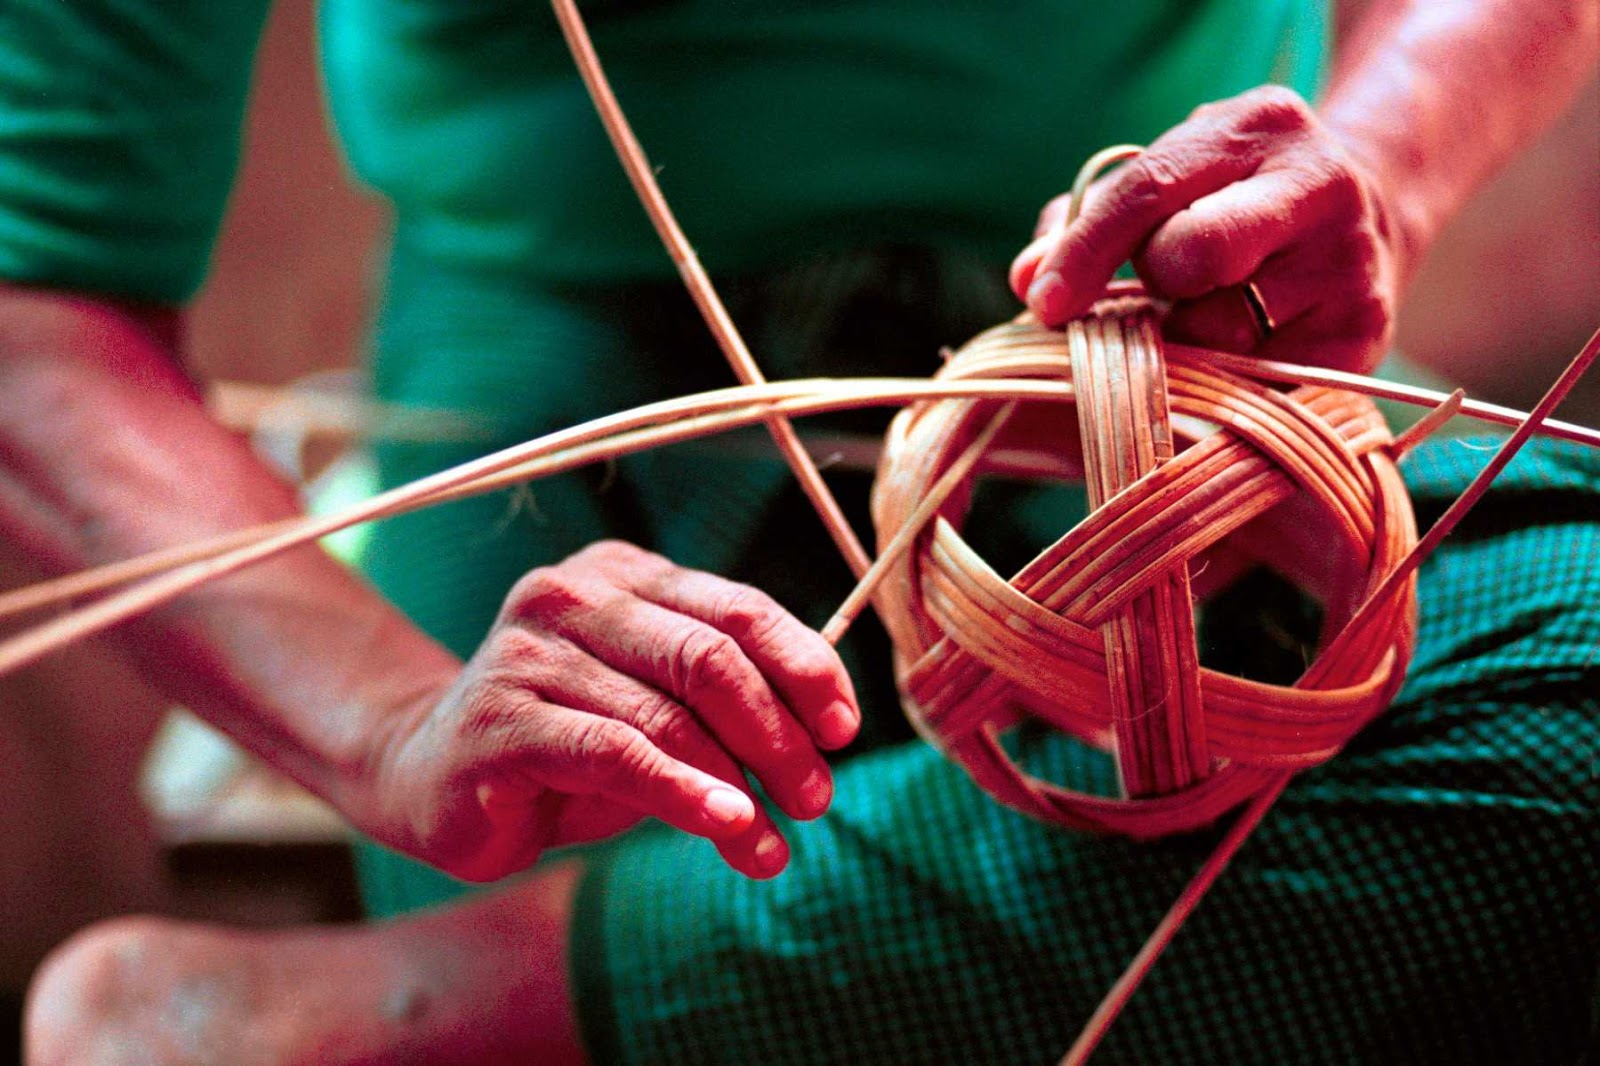 The Myanmar Traditional Chinlone (Cane Ball) © Travel Myanmar